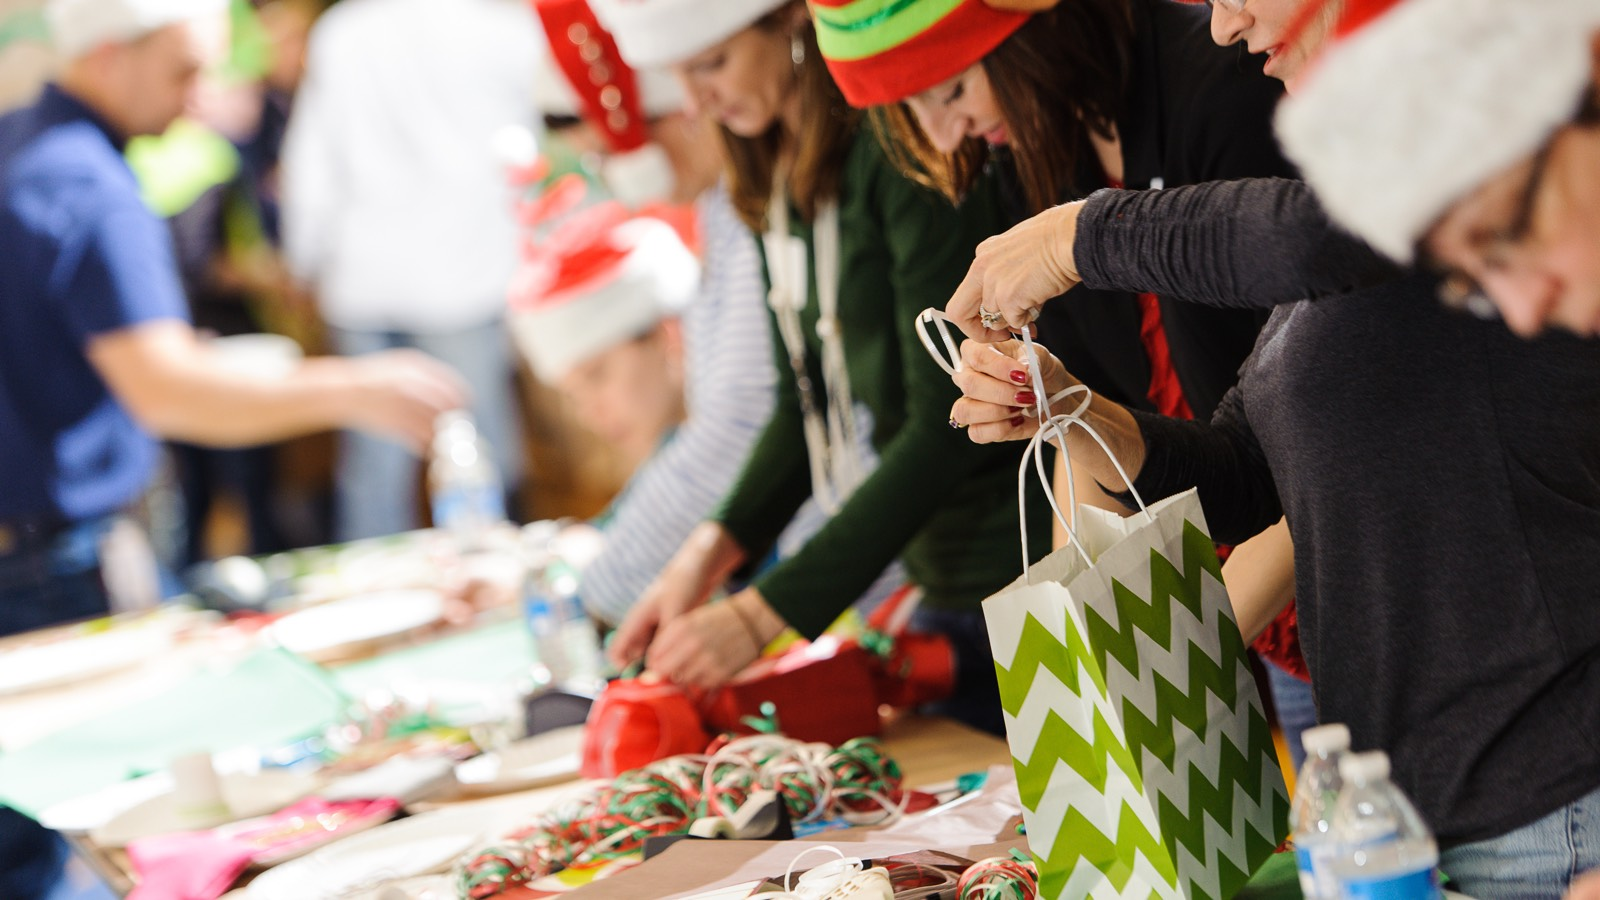 People wearing festive holiday attire assemble brightly colored gift bags during a We Care event.